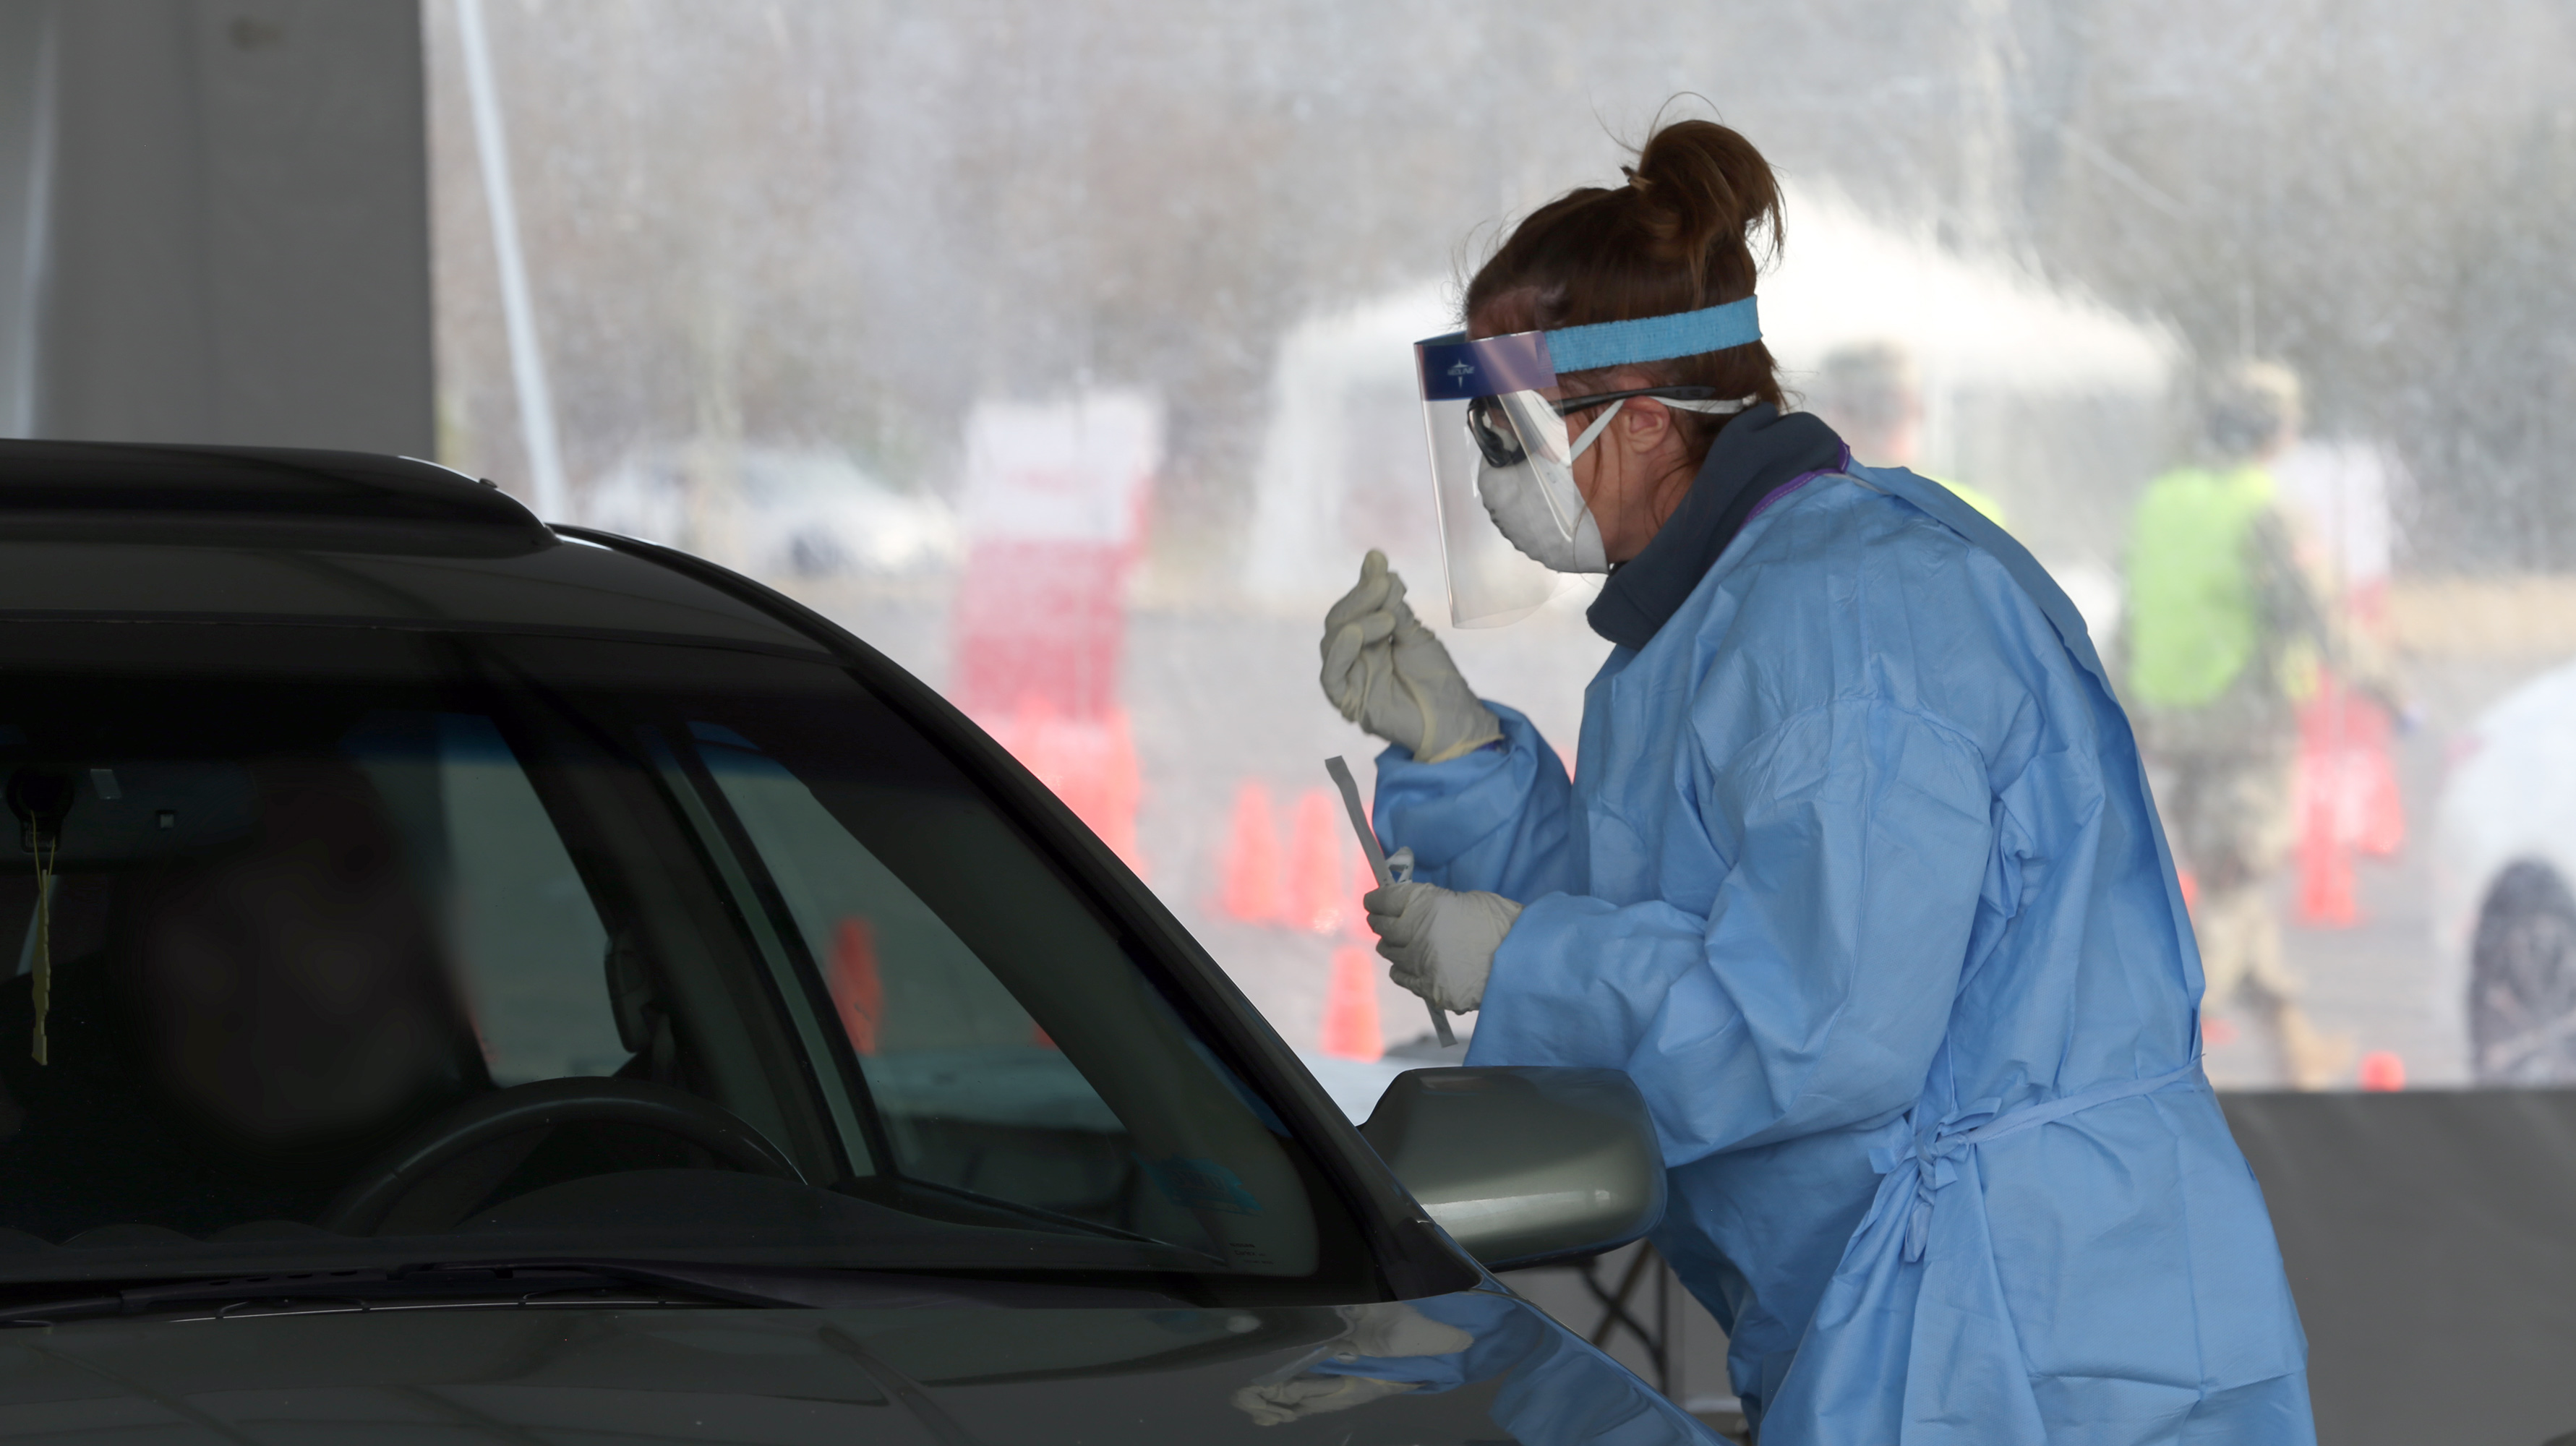 A medical professional examines a swab taken from a patient at a COVID-19 rapid testing drive-through site.